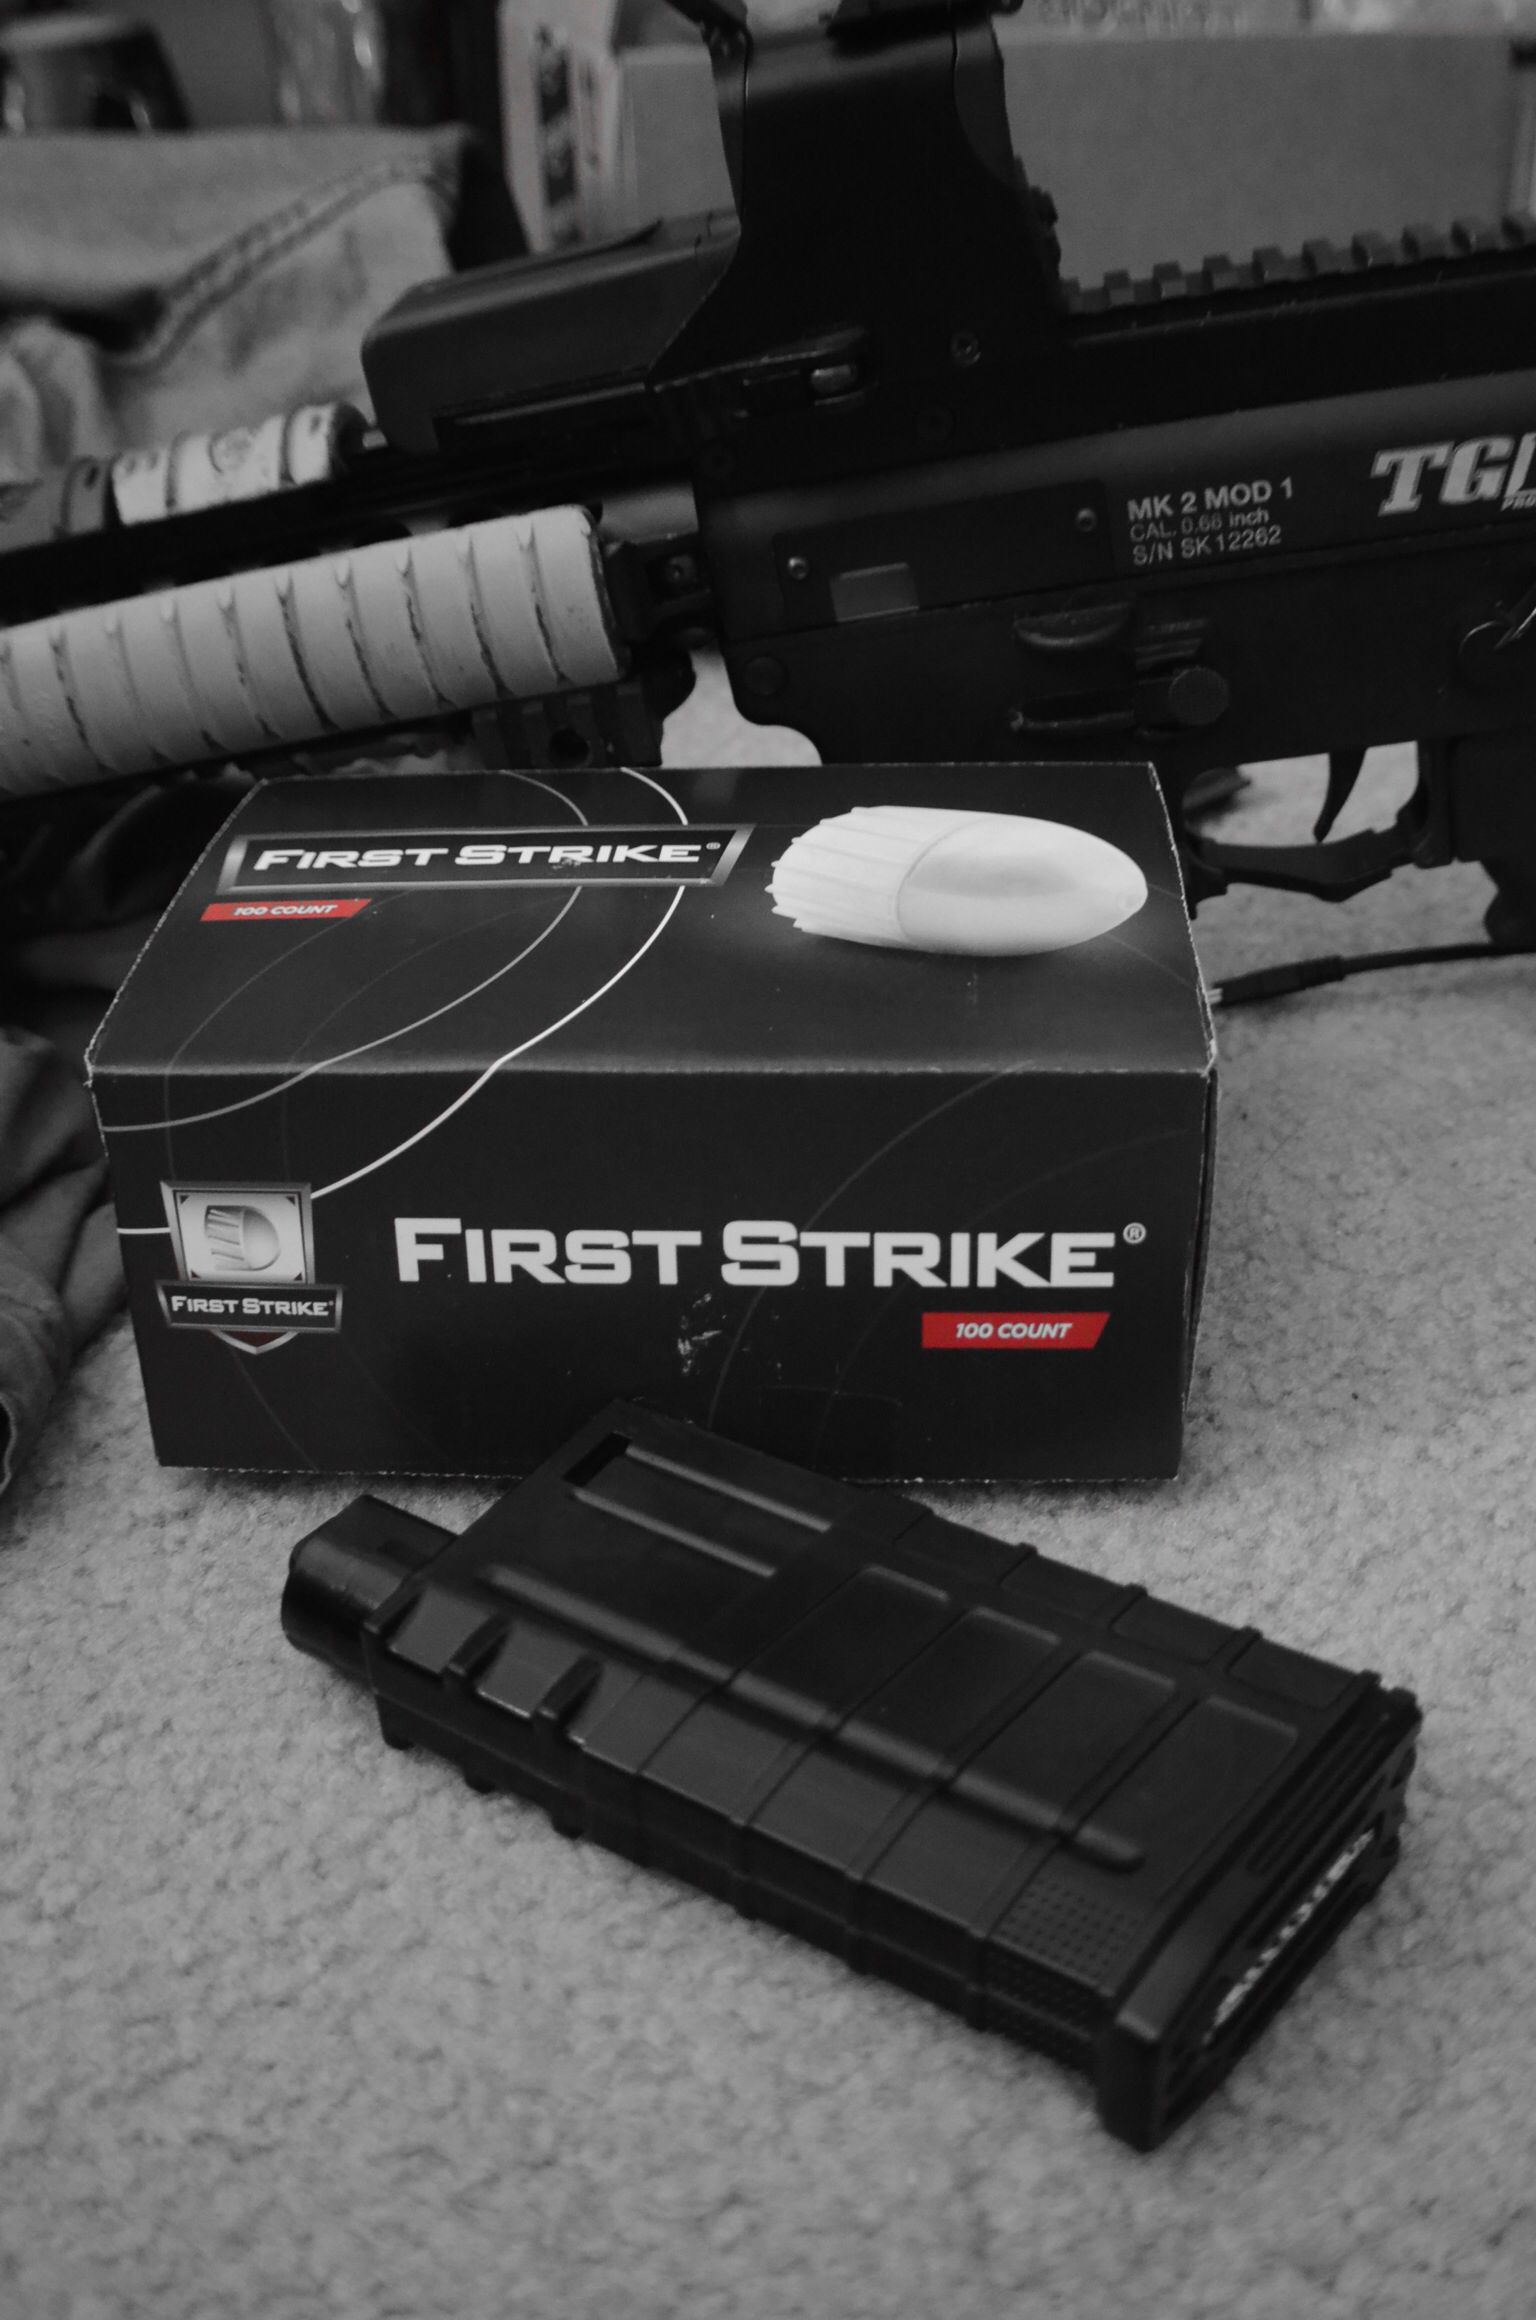 First strike rounds ready for use! Paintball gear